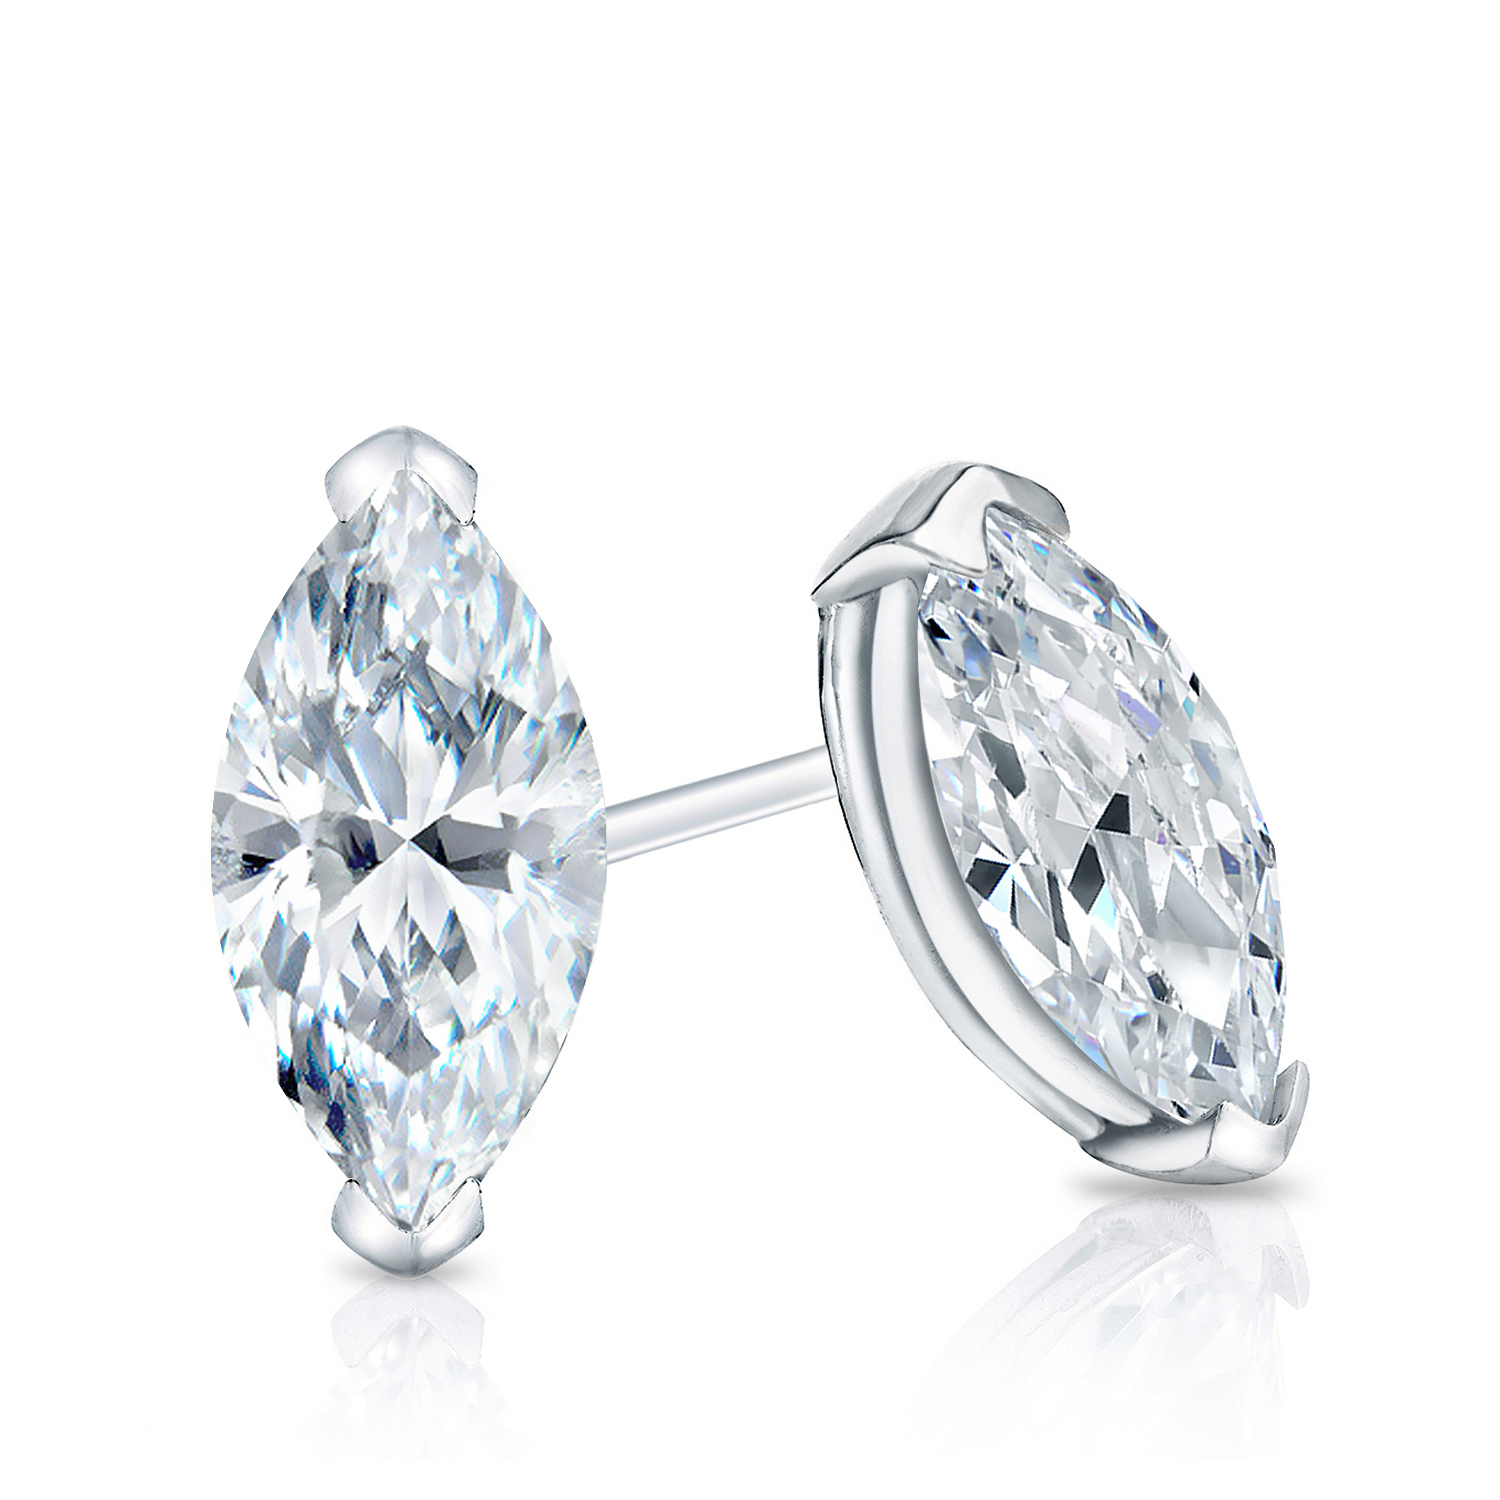 V-End Prong Diamond Stud Earrings in 14k White Gold